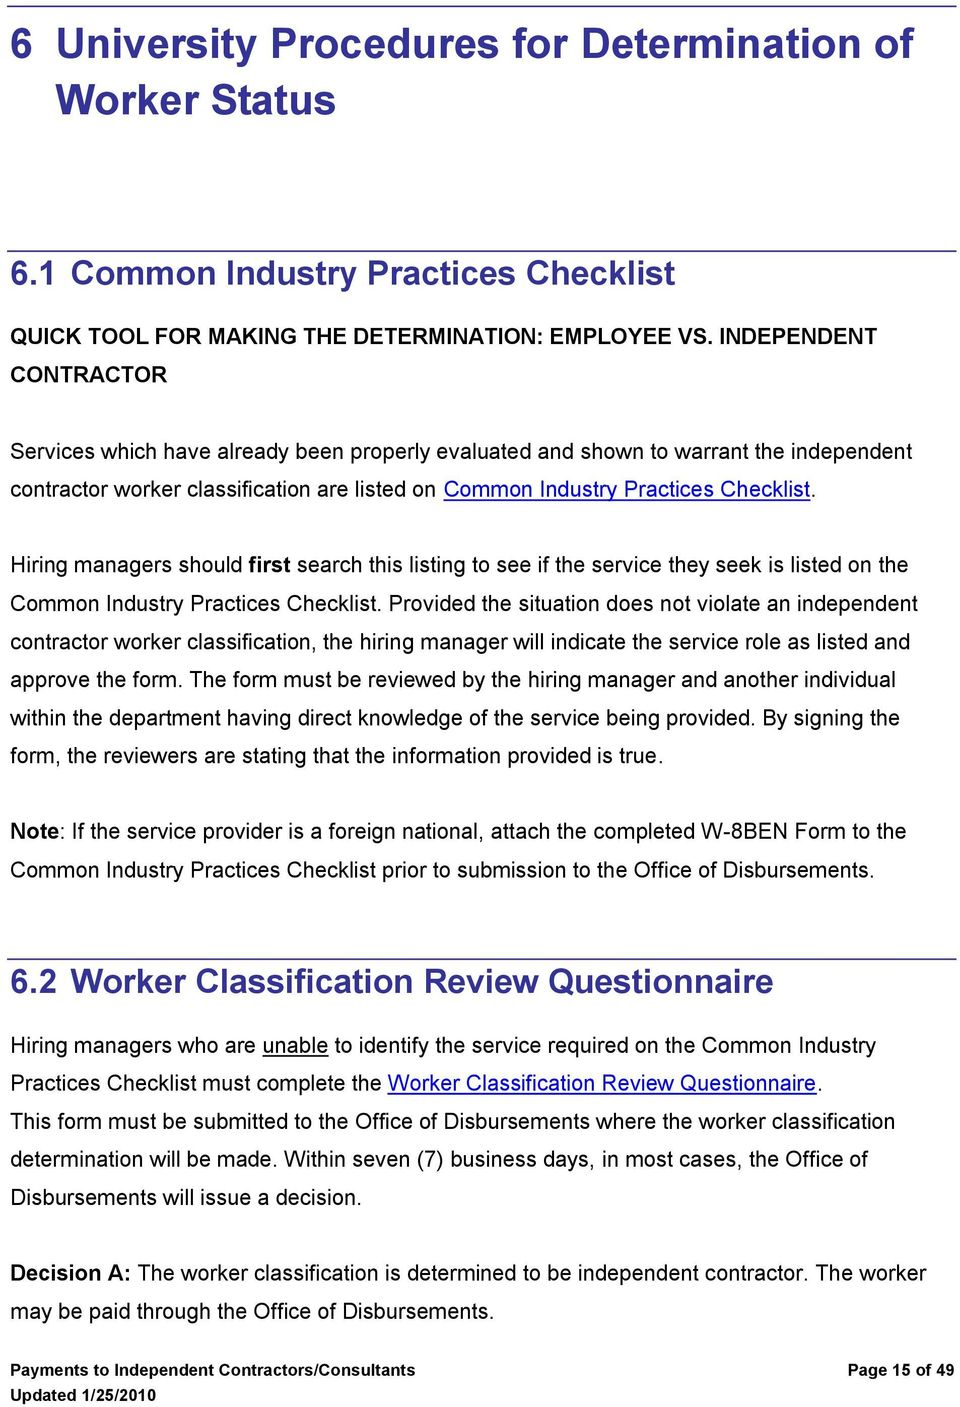 payments to independent contractors consultants pdf